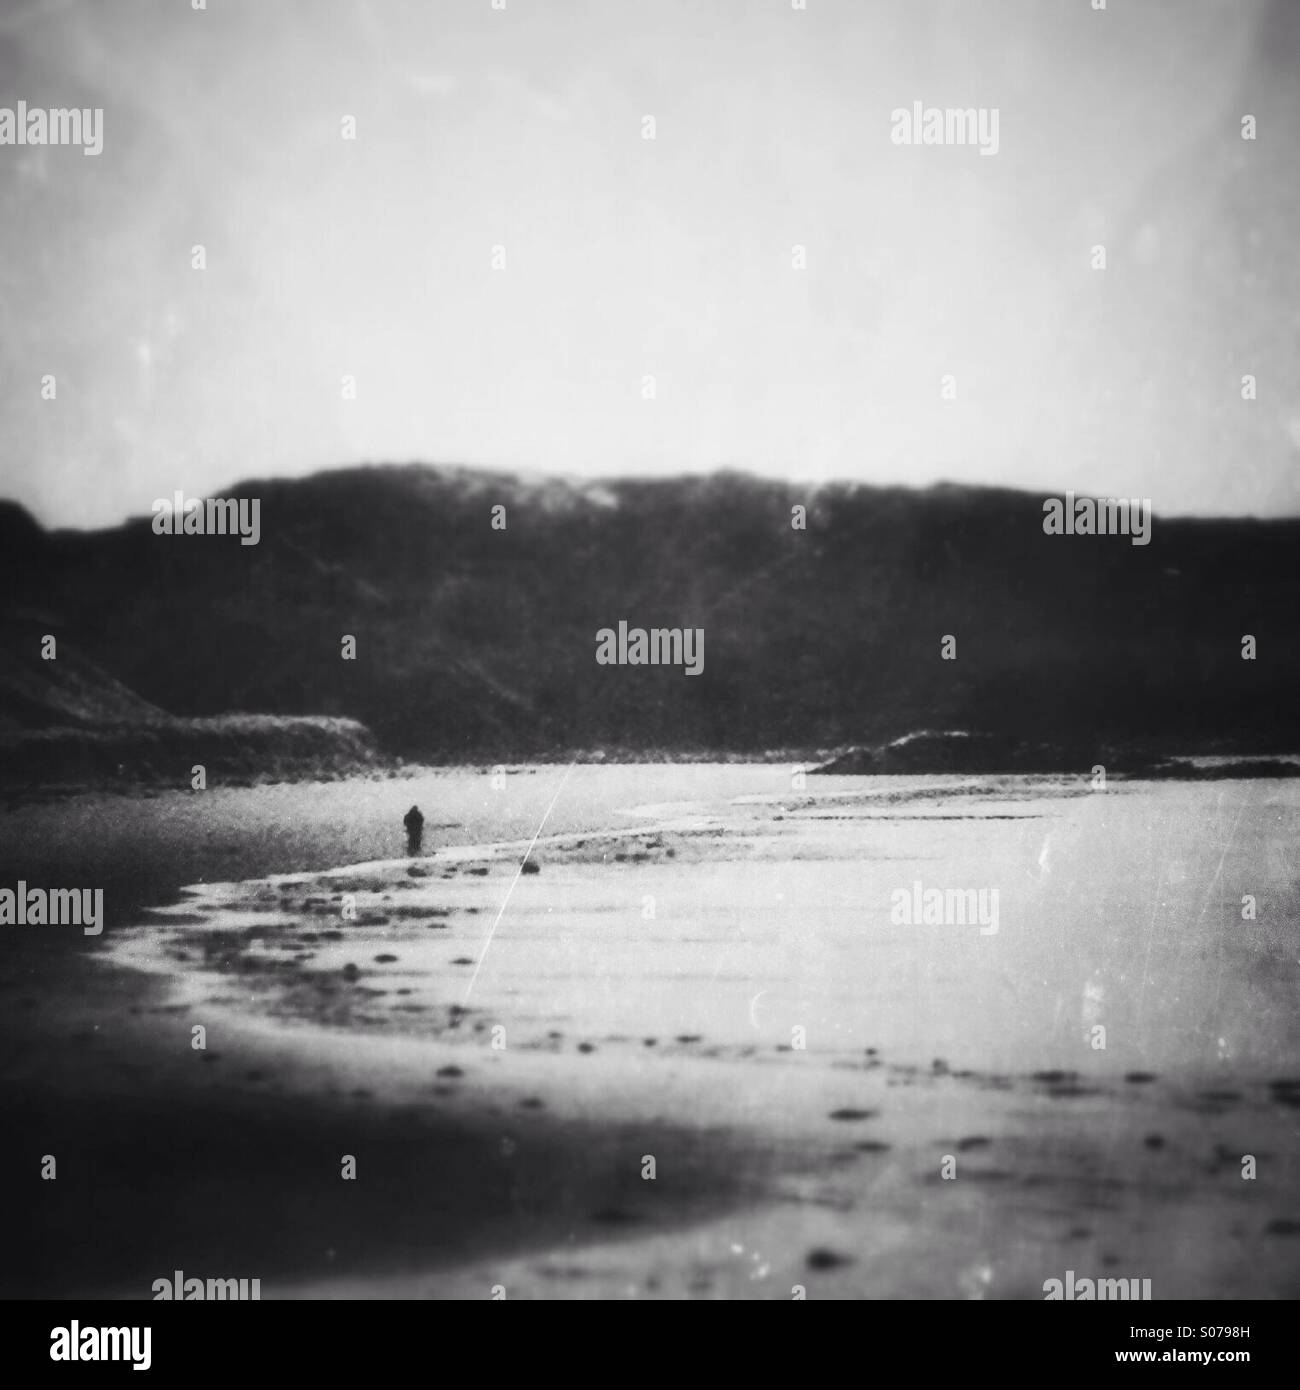 Lone person walking along the shore. Old style effects and textures added. - Stock Image